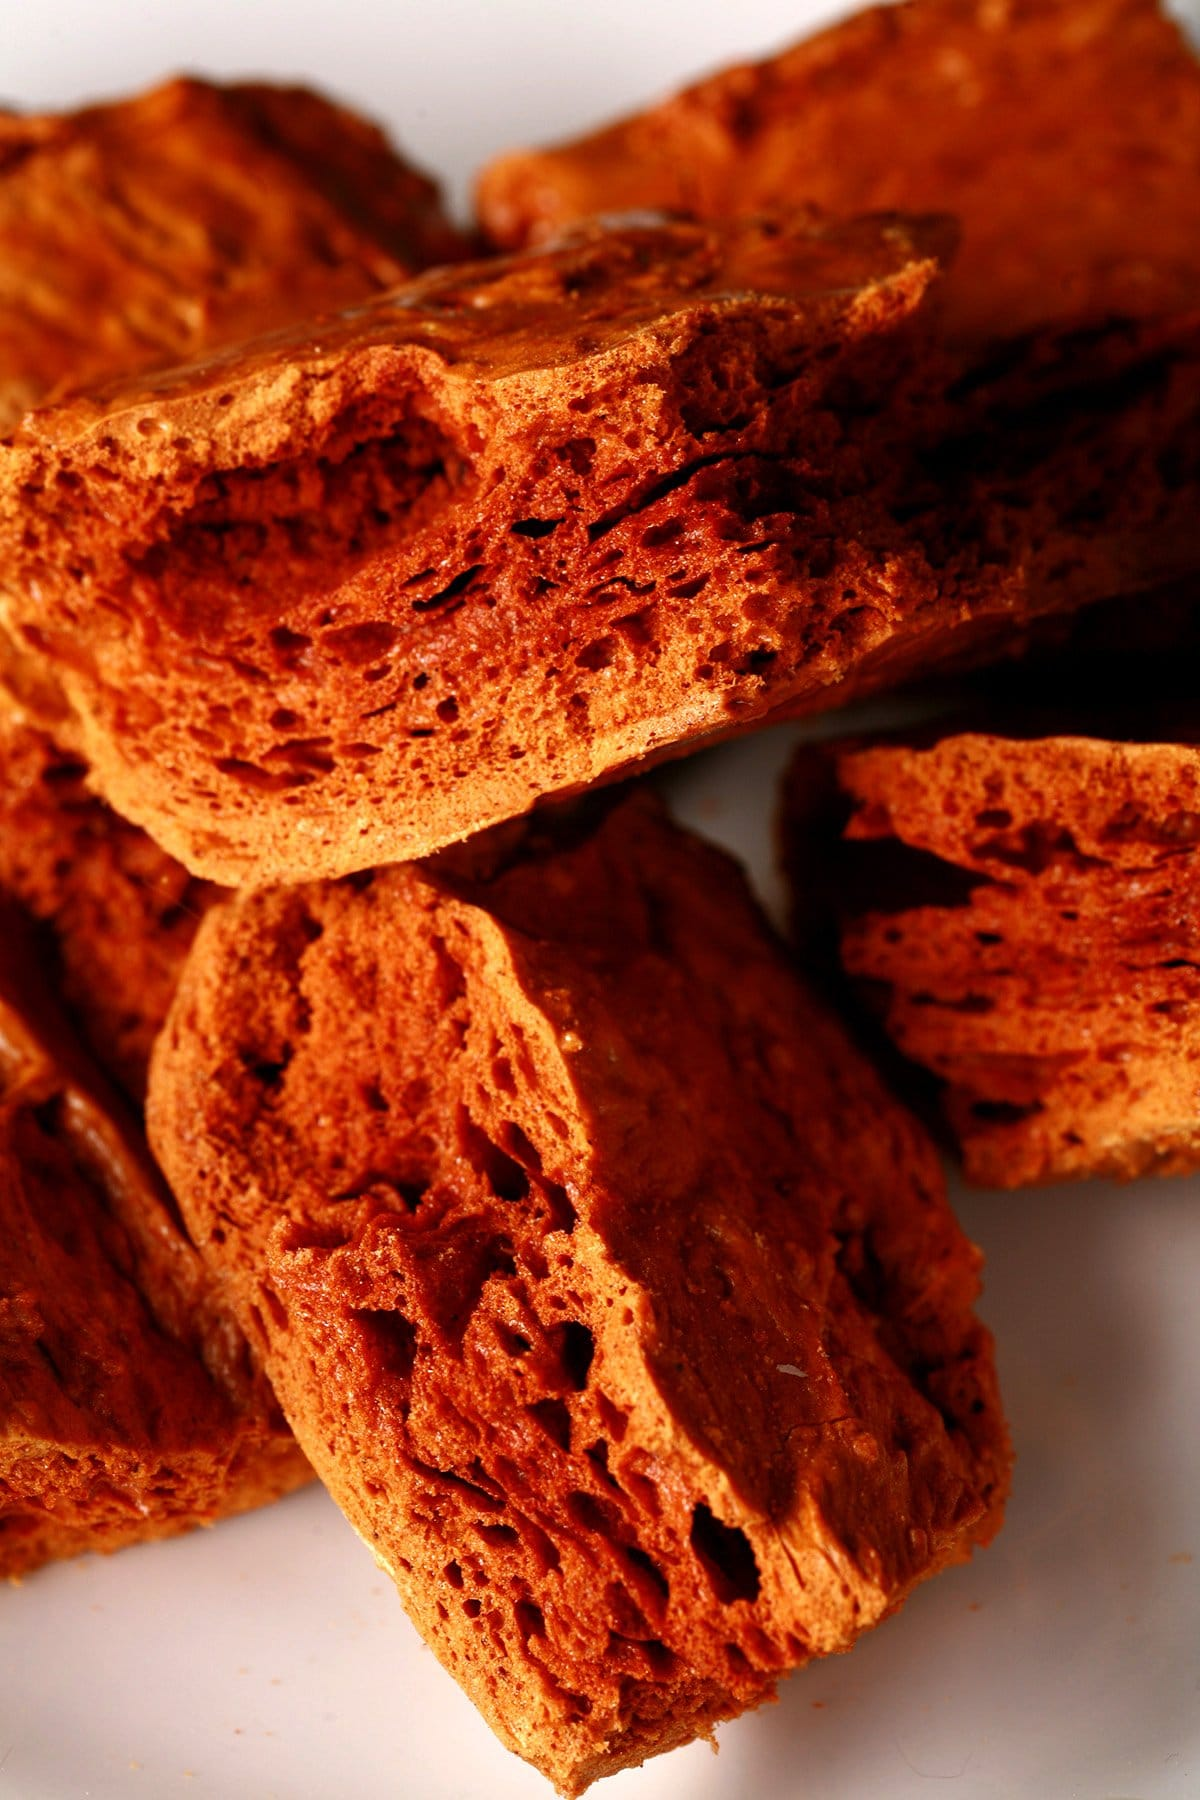 Chunks of deep amber coloured ginger-molasses sponge toffee are piled on a small white plate.